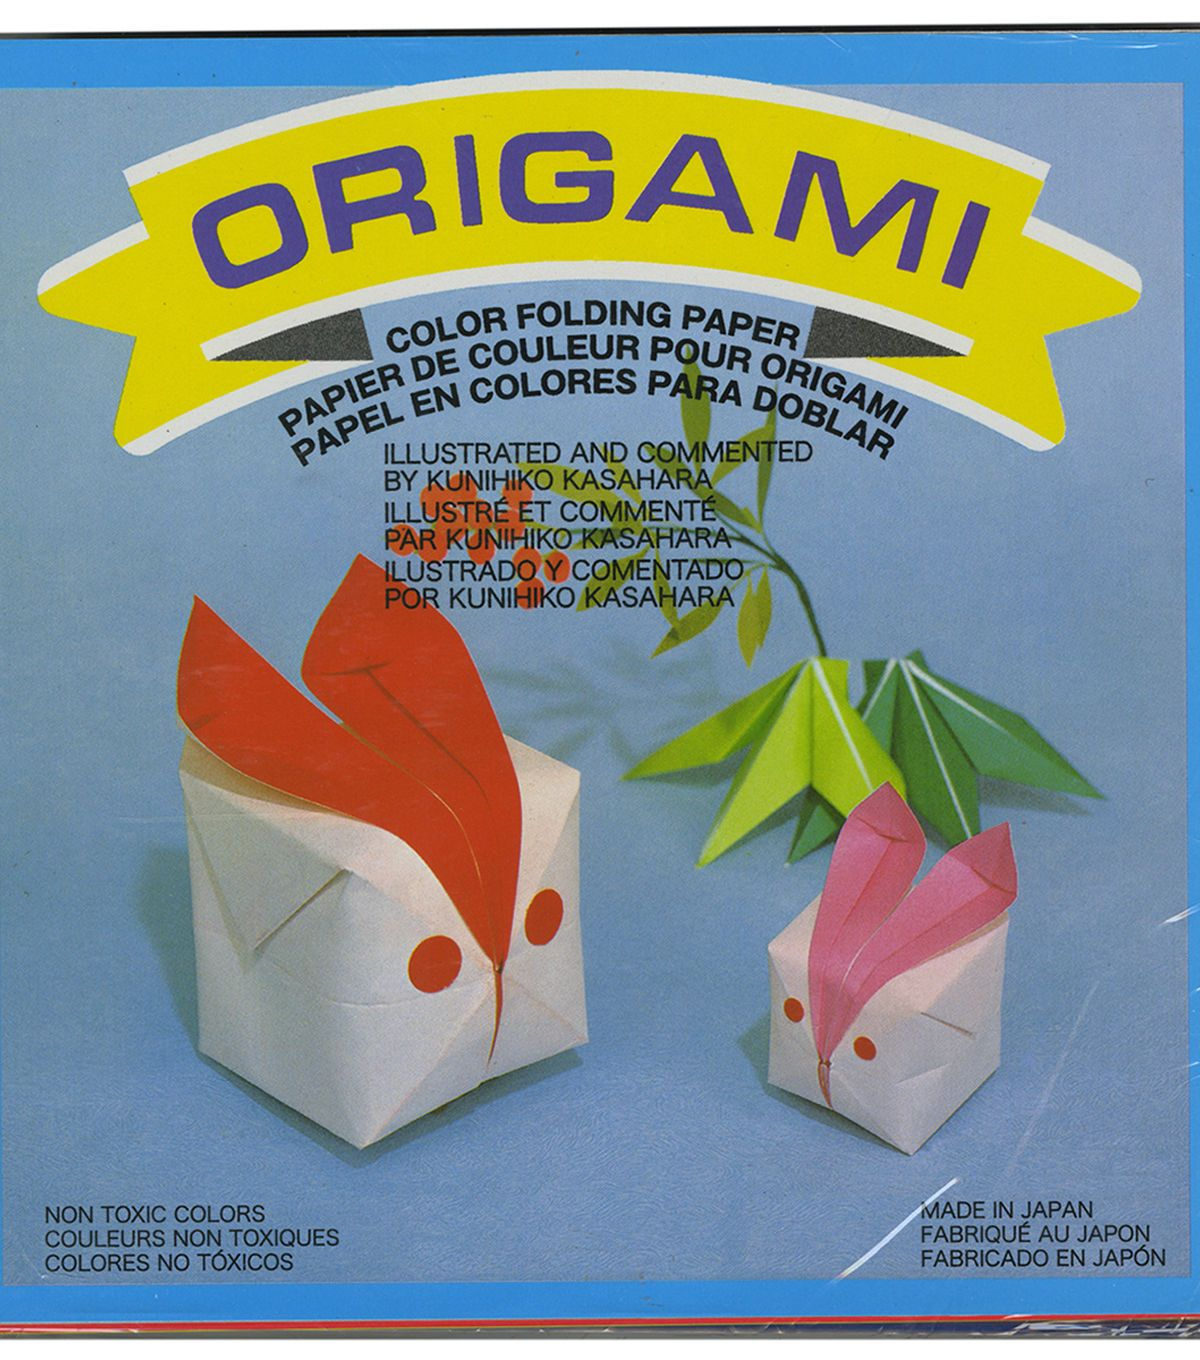 Origami Gift Box - Tutorial Video | Origami gift box, Origami ... | 1360x1200